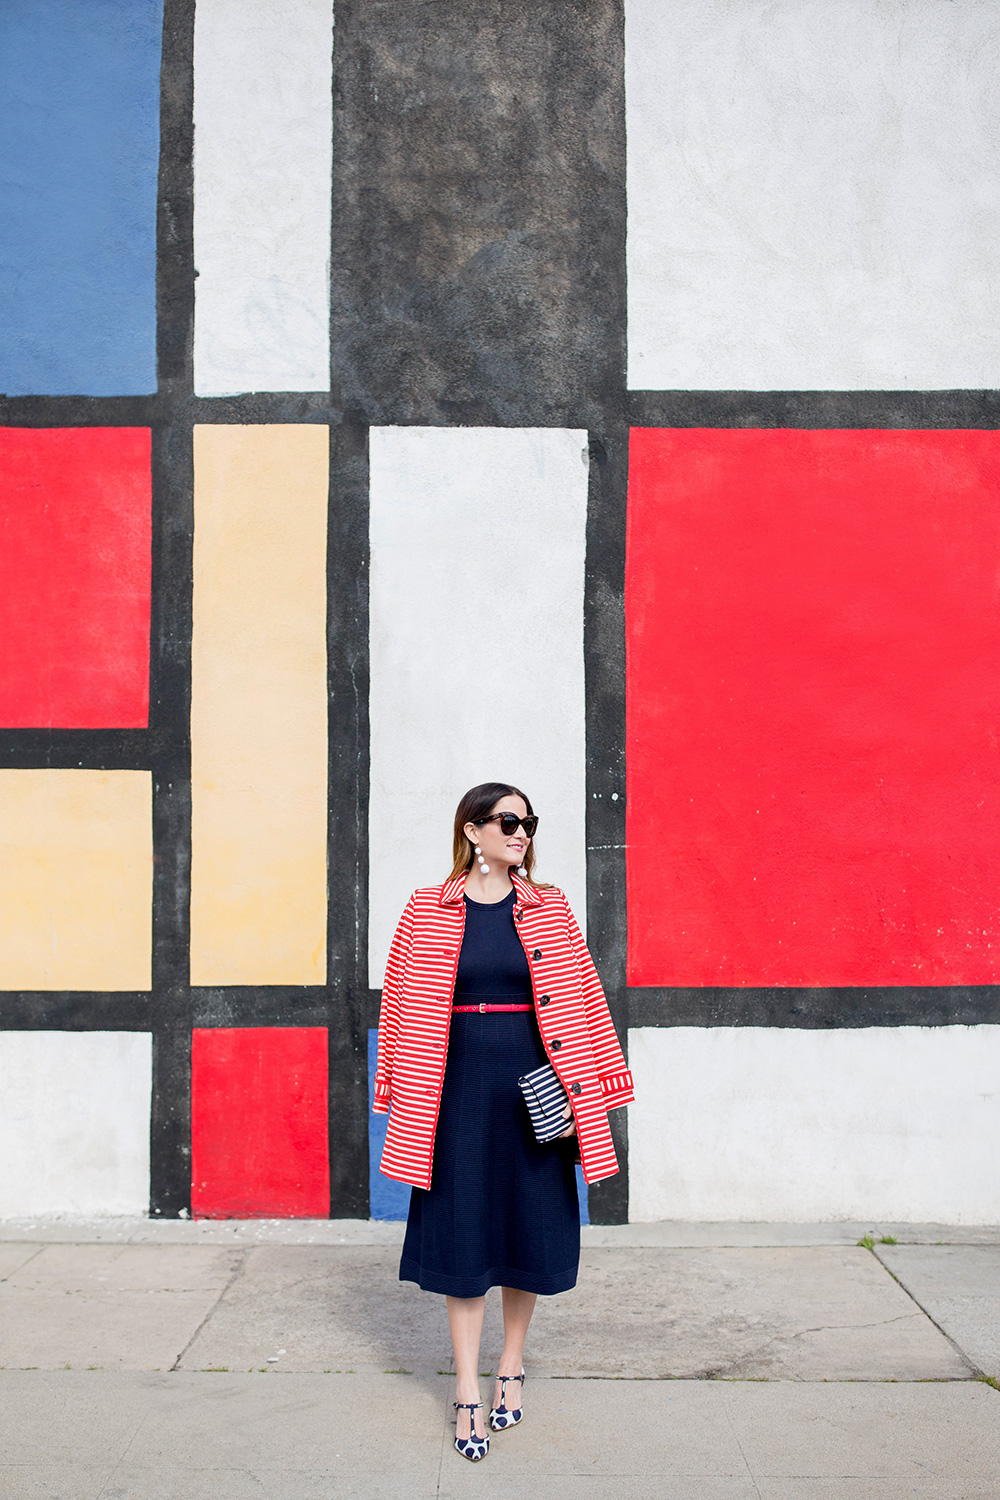 Mondrian Wall Los Angeles